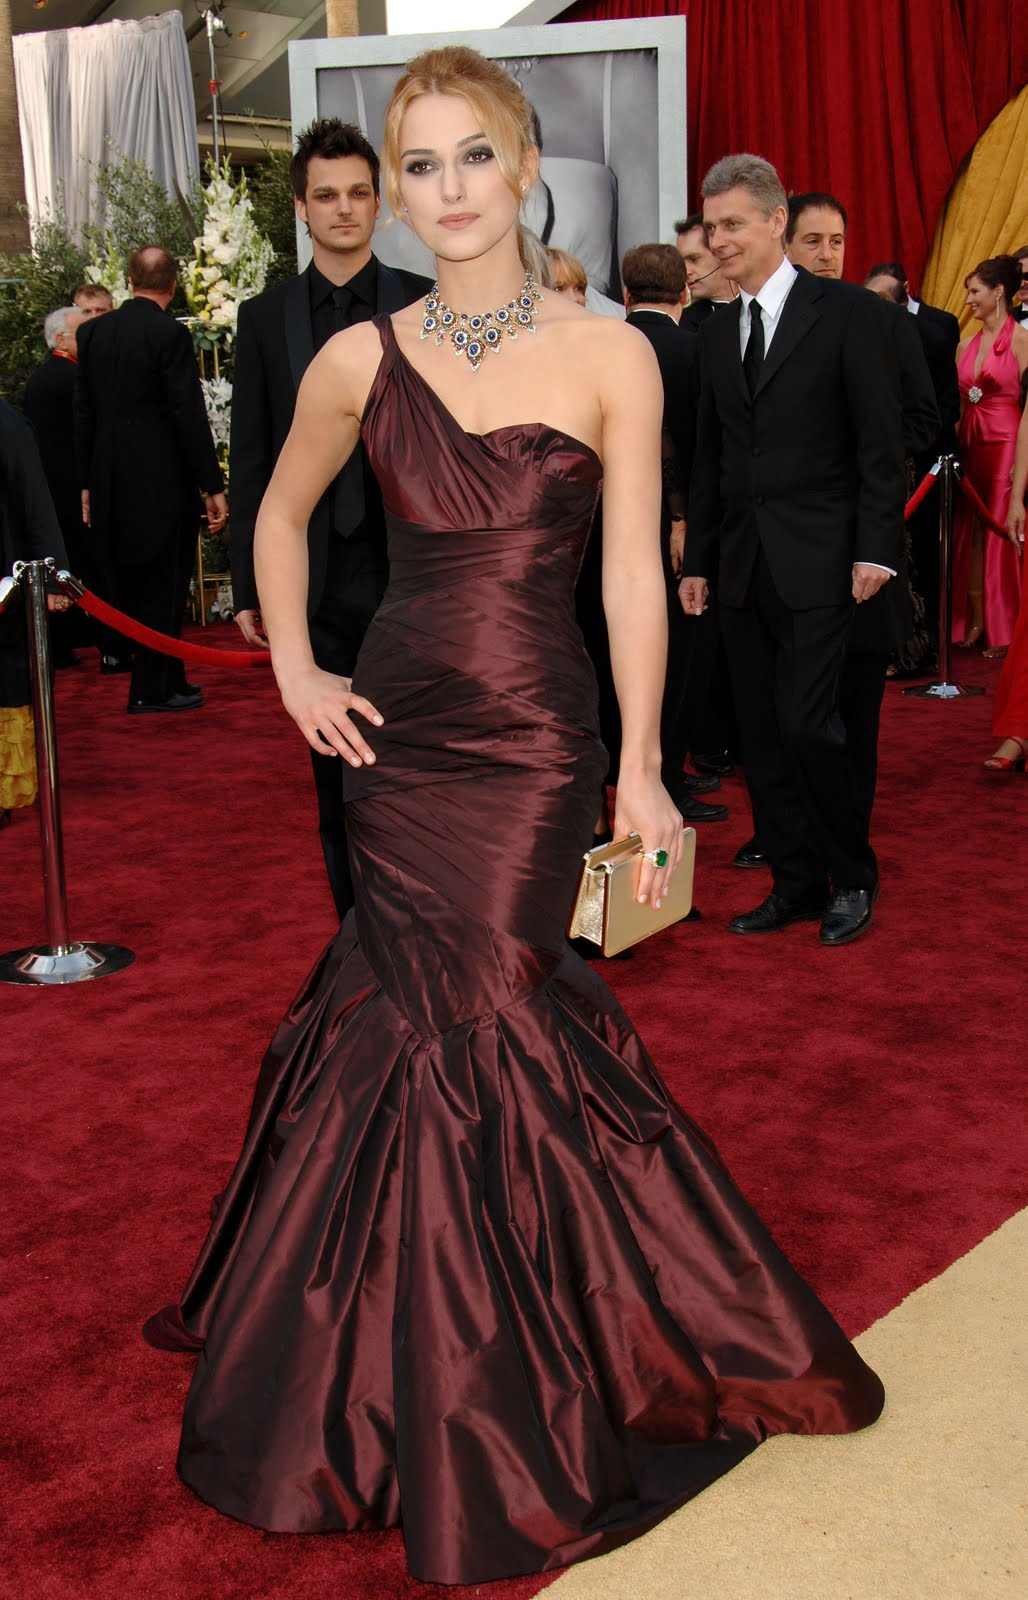 http://3.bp.blogspot.com/-3cNwOxL9fZM/Tfy_VS7C7jI/AAAAAAAAAl8/If3Ty87Q6RE/s1600/keiraknightley-dot-net-academy-awards-oscars-5march06-redcarpet066.jpg